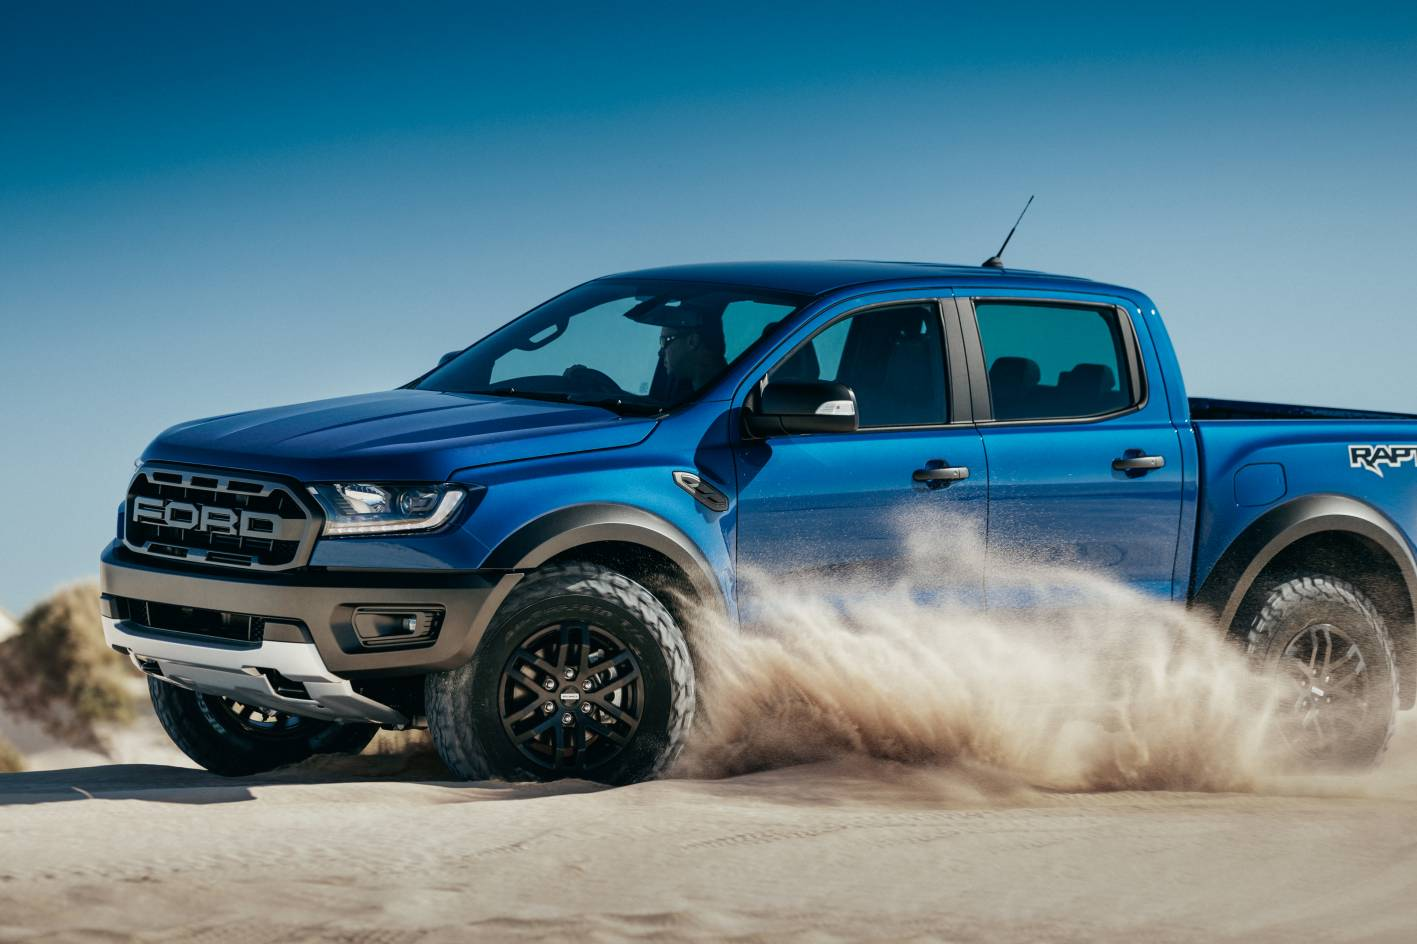 Ford Raptor 2018 >> 2018 Ford Ranger Raptor unleashed - ForceGT.com